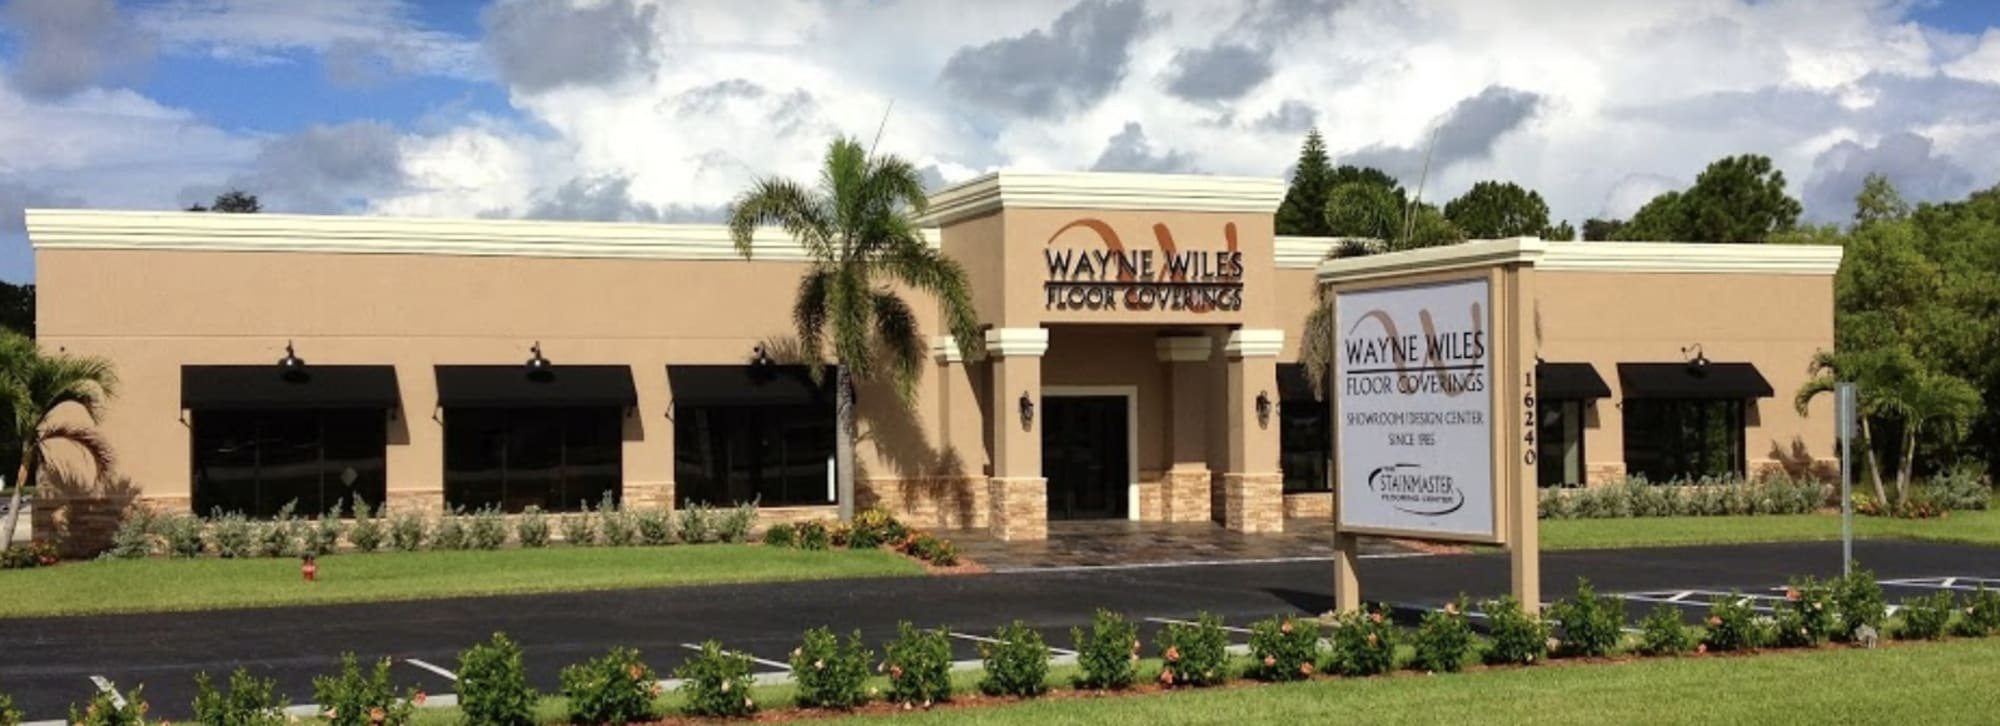 Wayne Wiles Floor Coverings - 16240 S Tamiami Trail Fort Myers, FL 33908